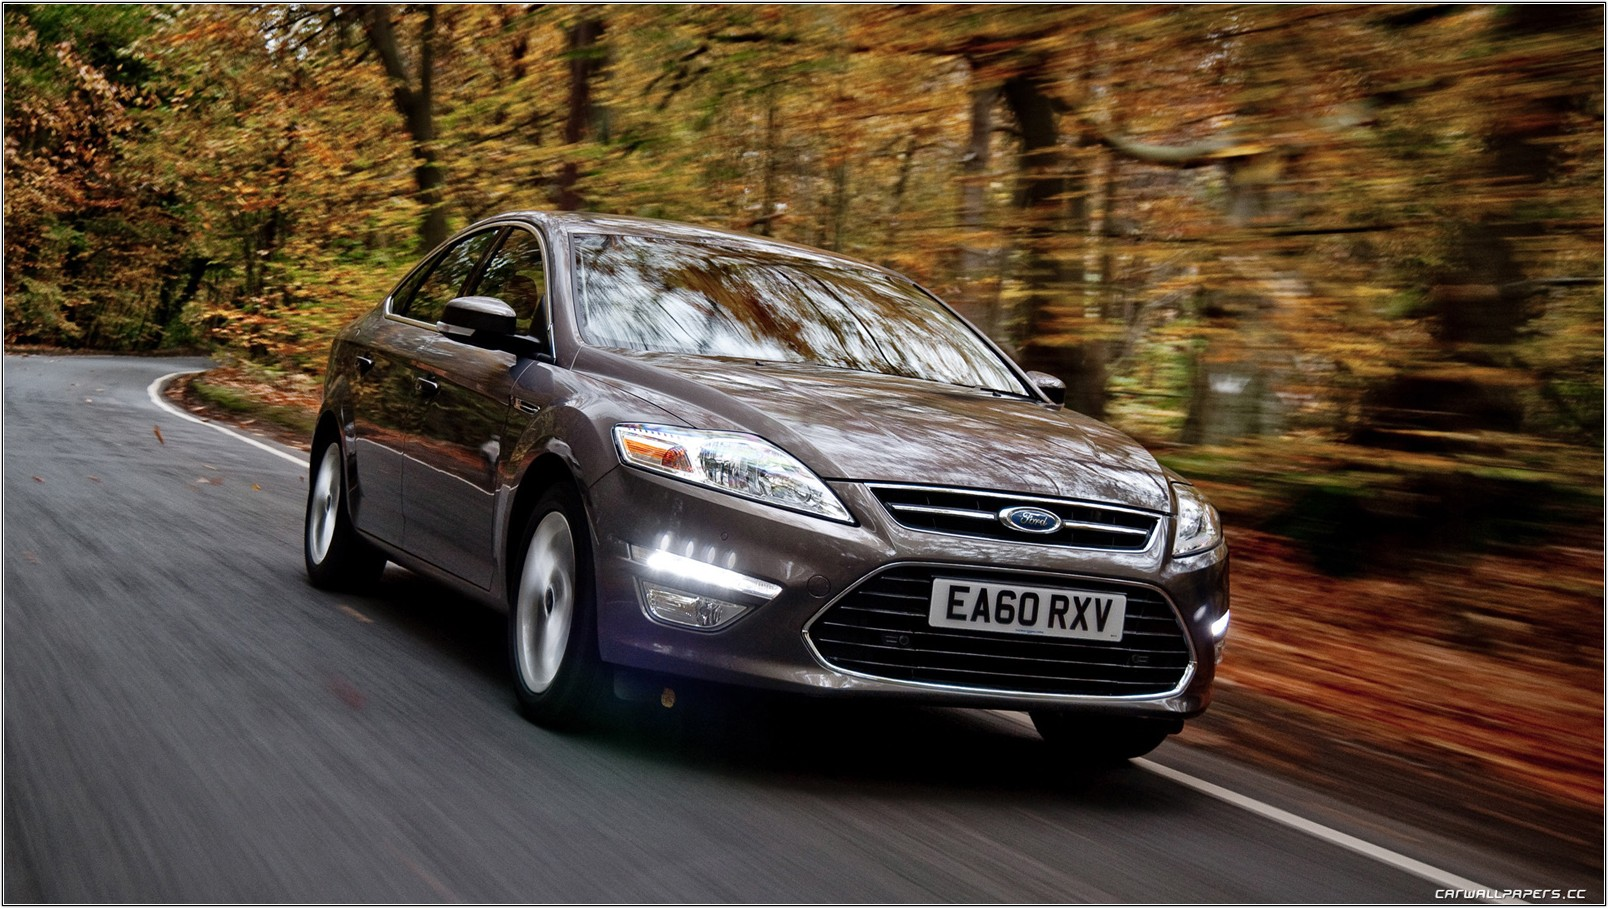 Ford Mondeo Wallpapers and Background Images   stmednet 1609x909